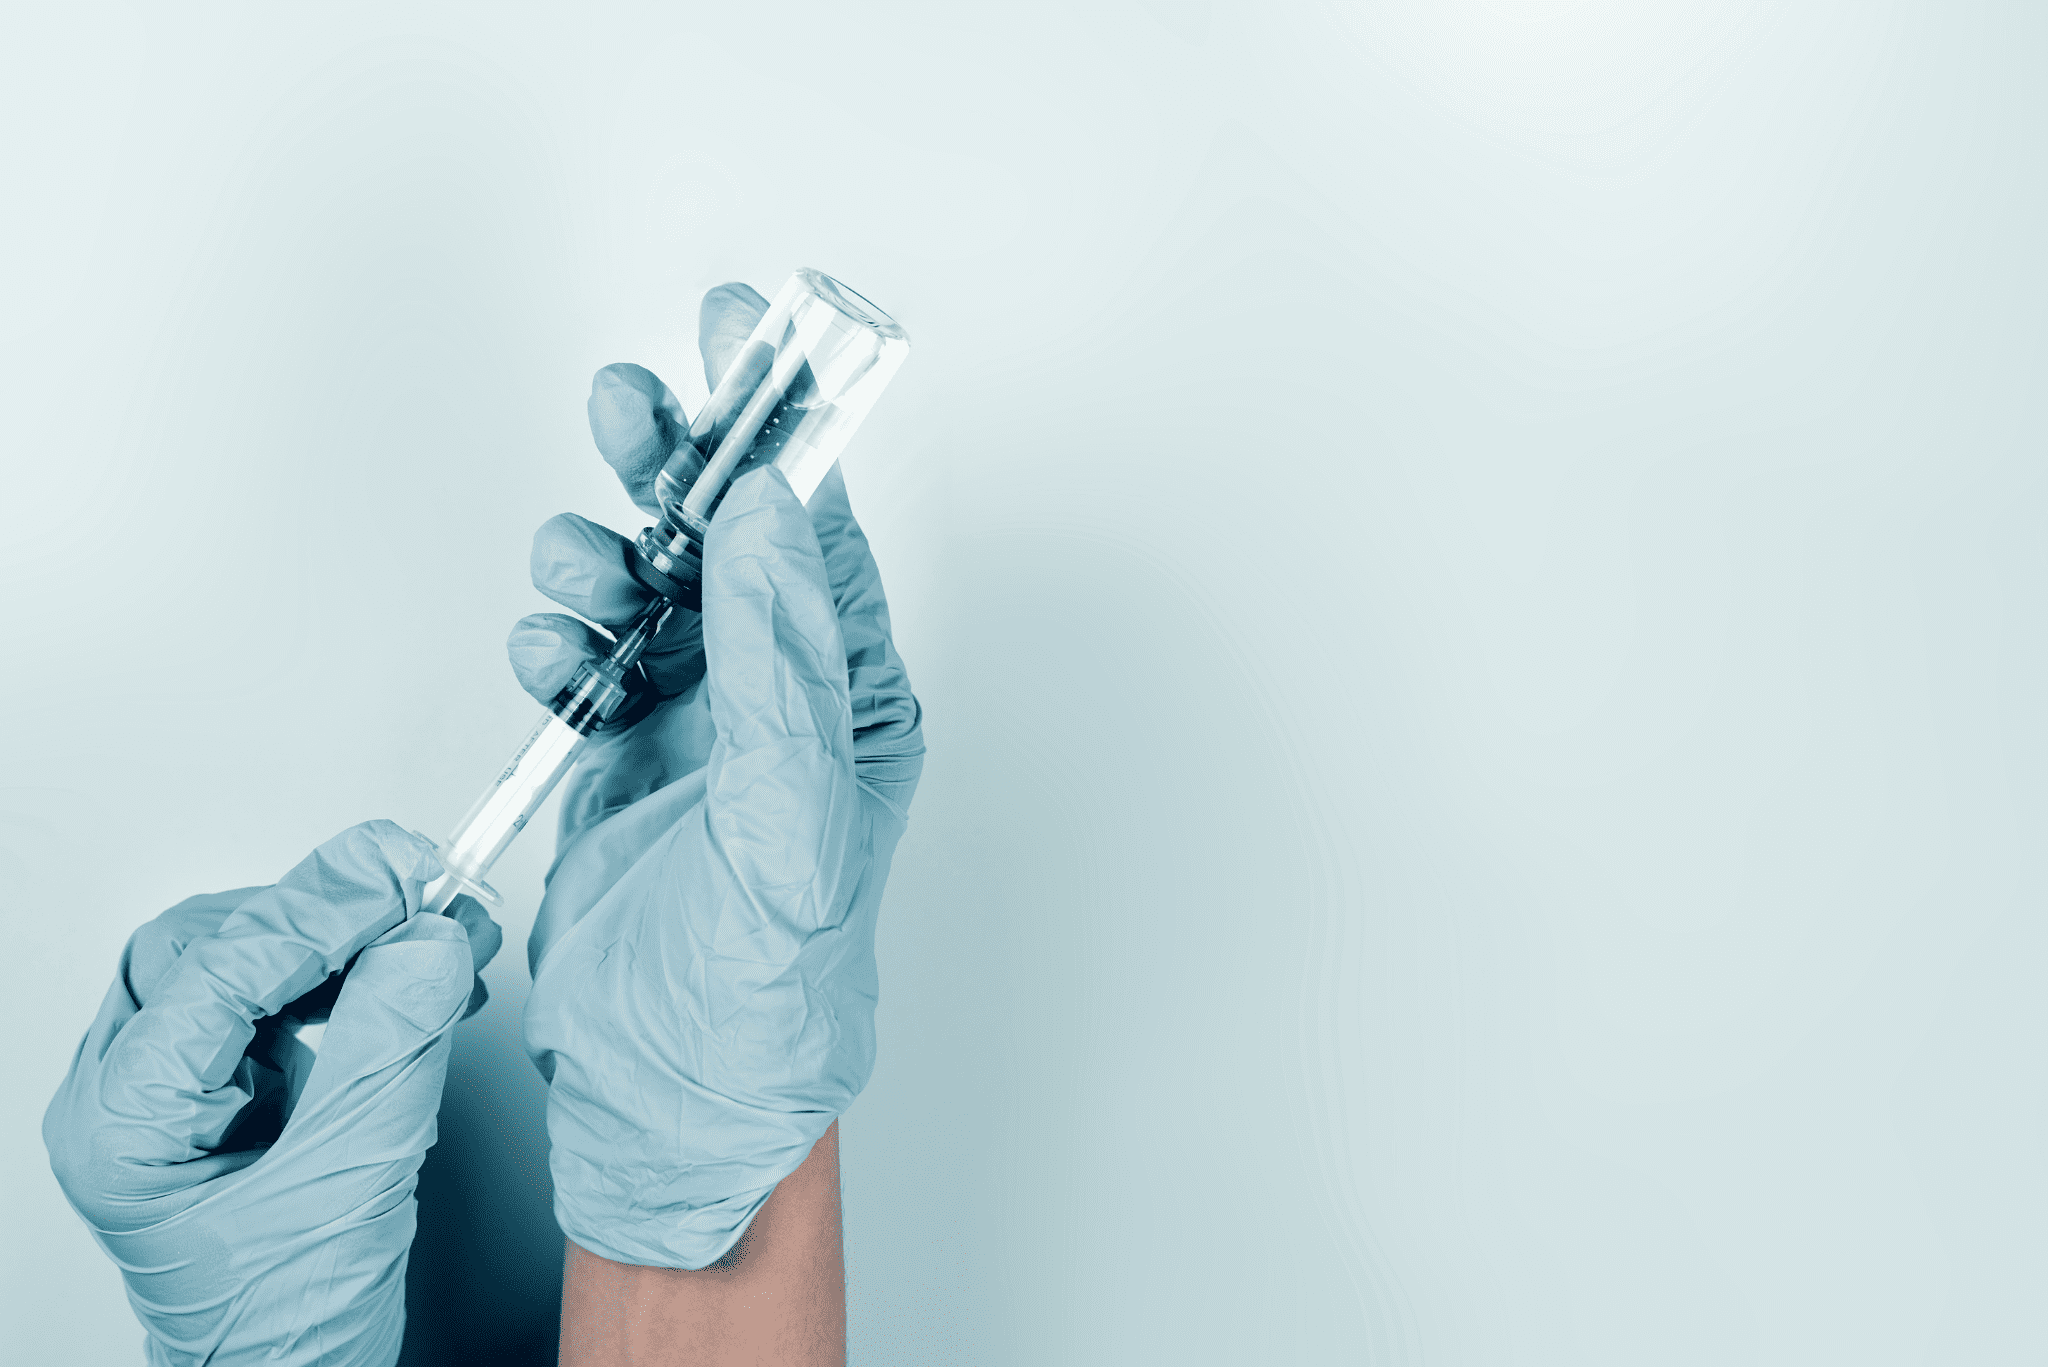 doctor gloves holding vaccination